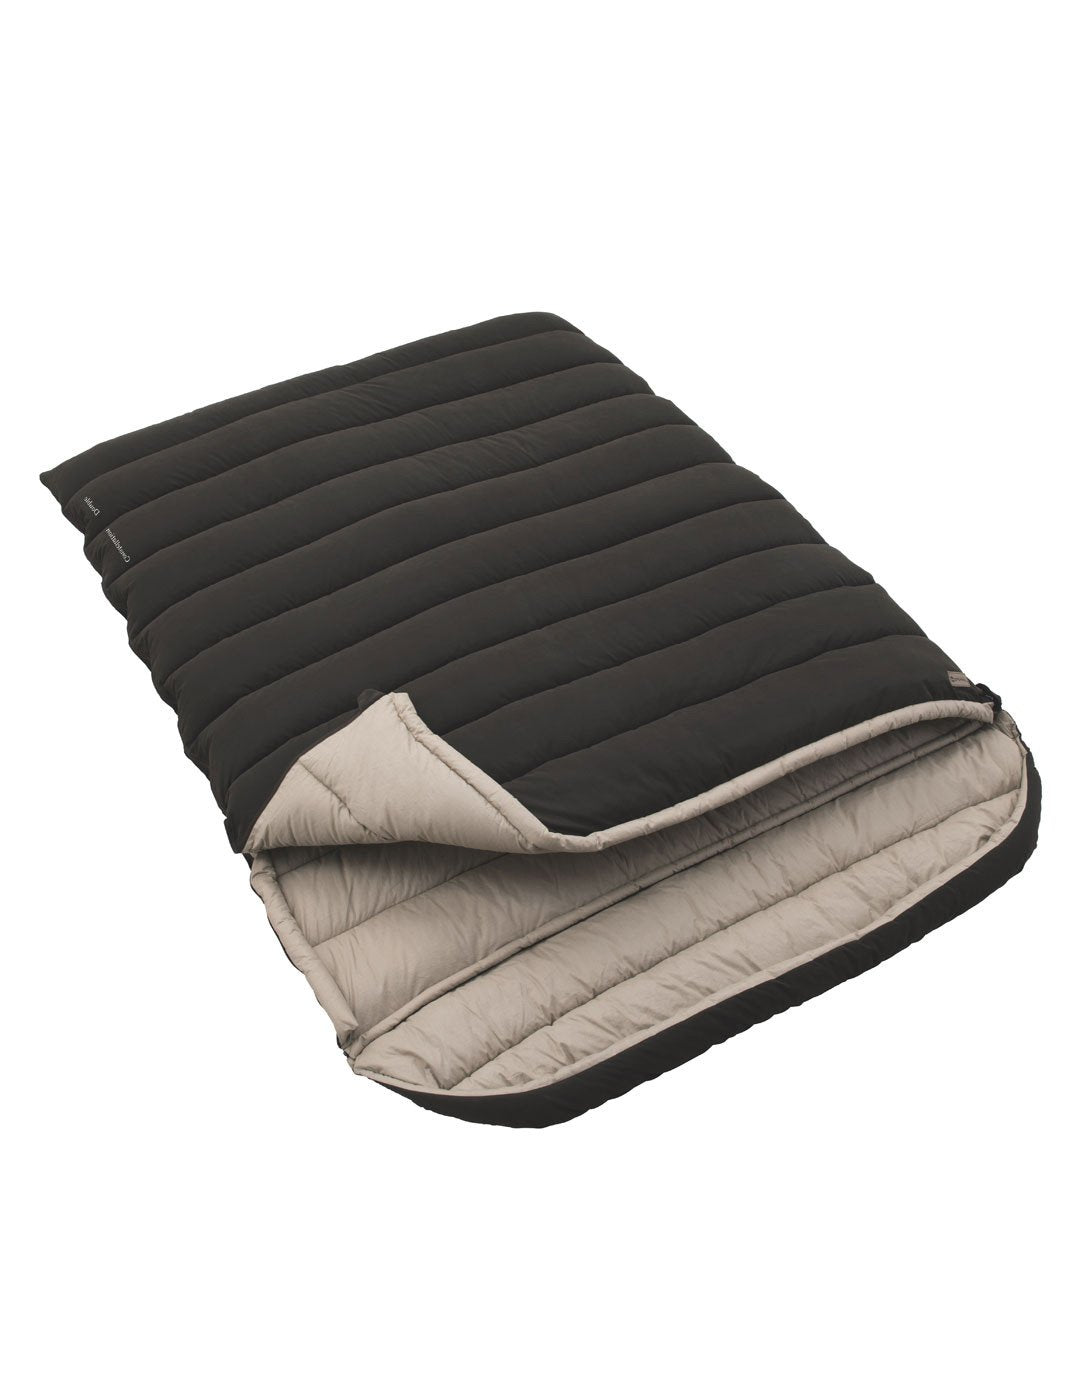 Constellation Lux Double Sleeping Bag